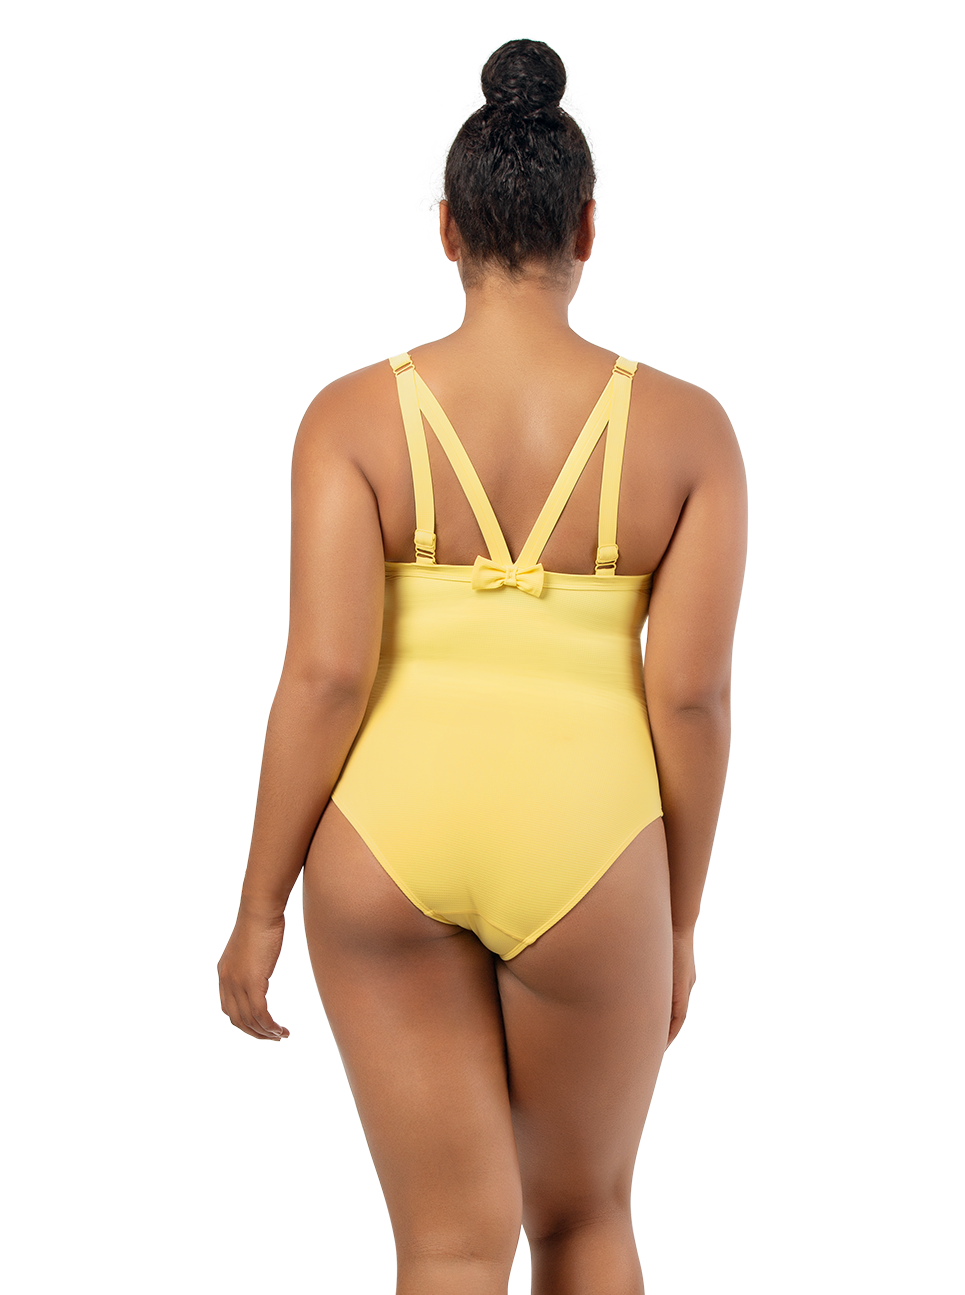 PARFAIT Vivien OnePieceSwimwearS8167 LemonDrop Back2 - Vivien One Piece Swimsuit Lemon Drop S8167